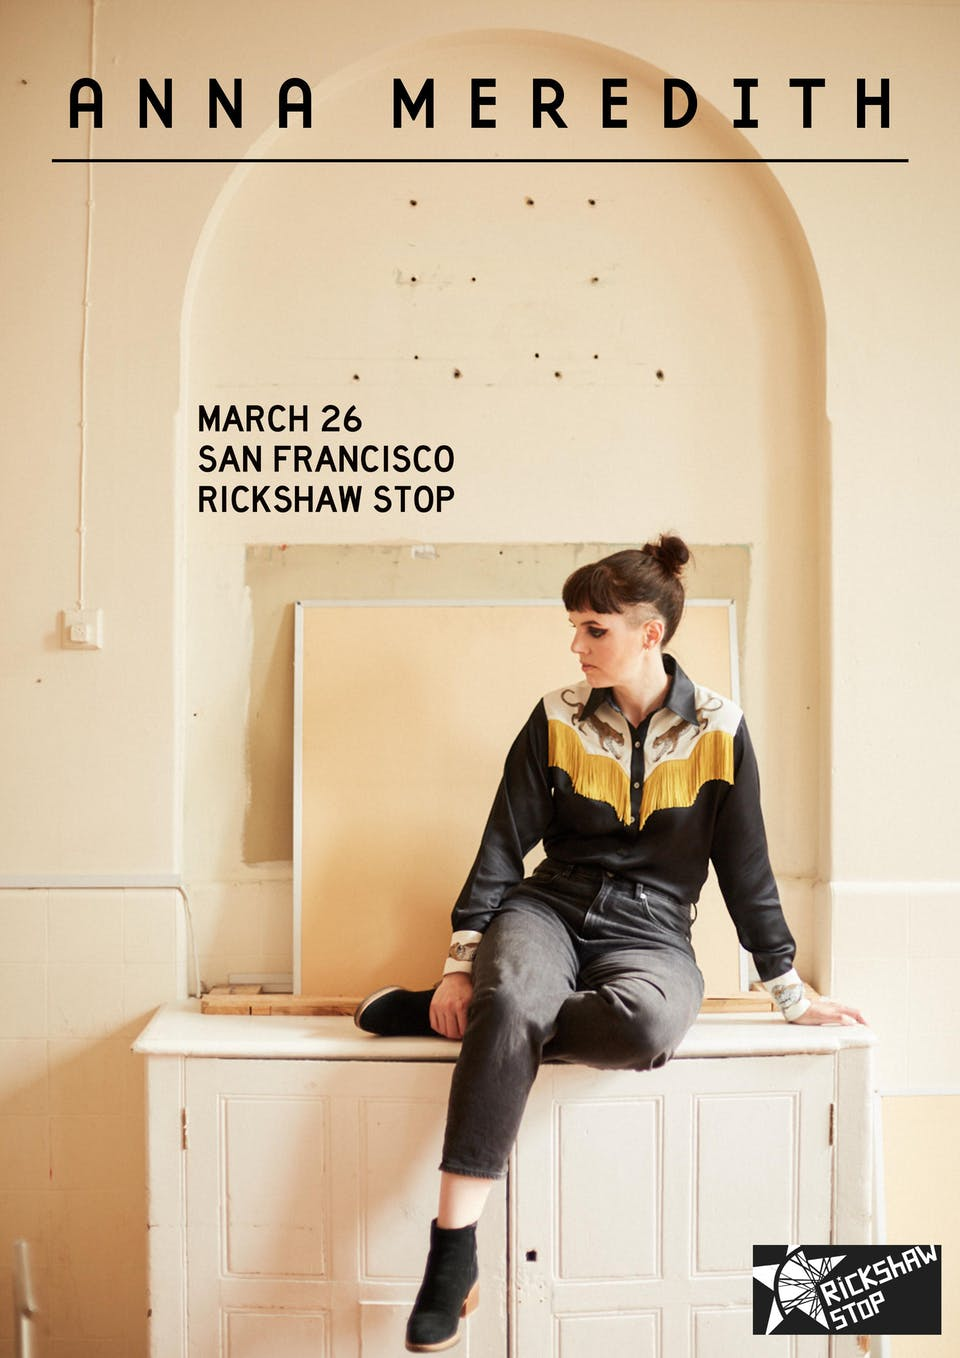 ANNA MEREDITH with support tba